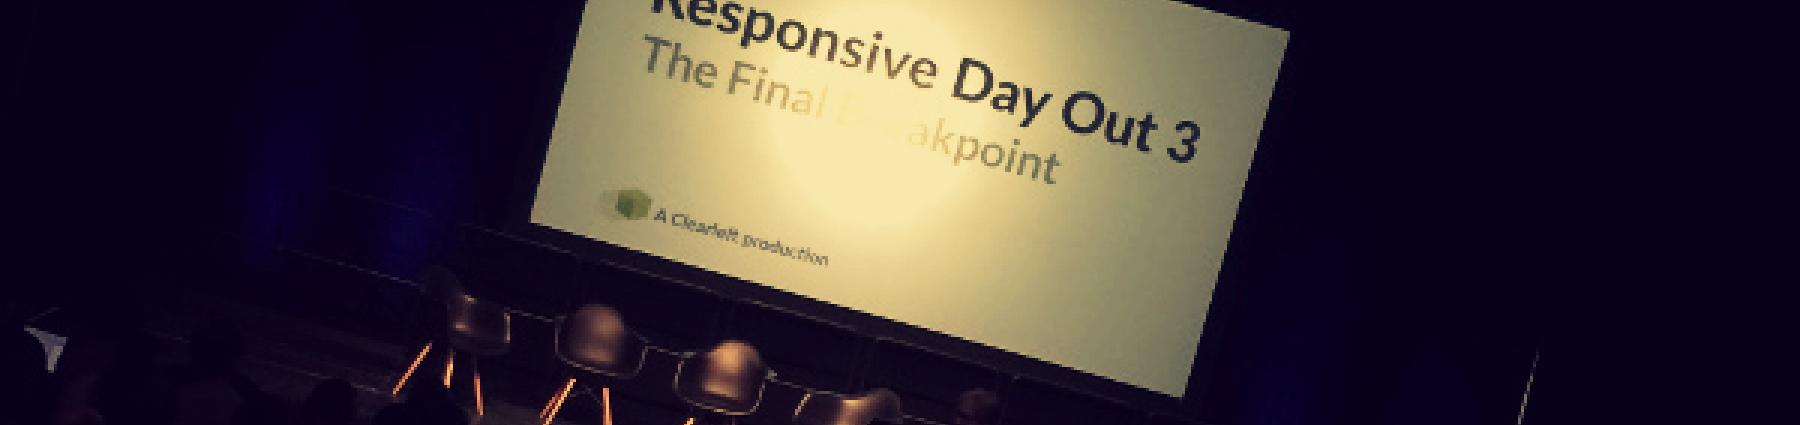 Responsive Day Out - The Final Breakpoint - First slide of the conference